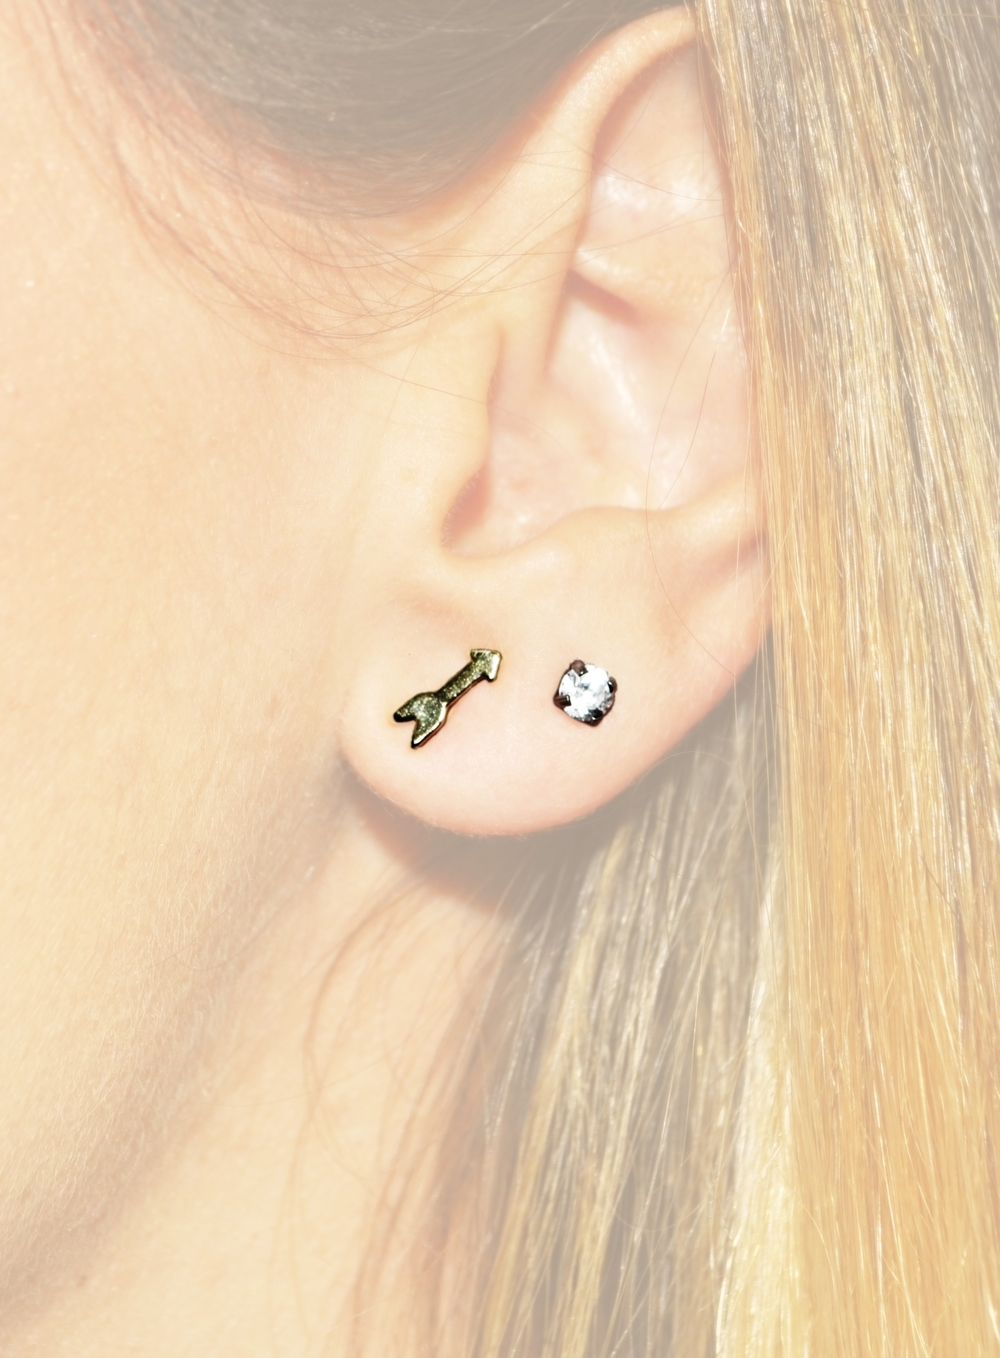 Dainty Earrings 4.jpg